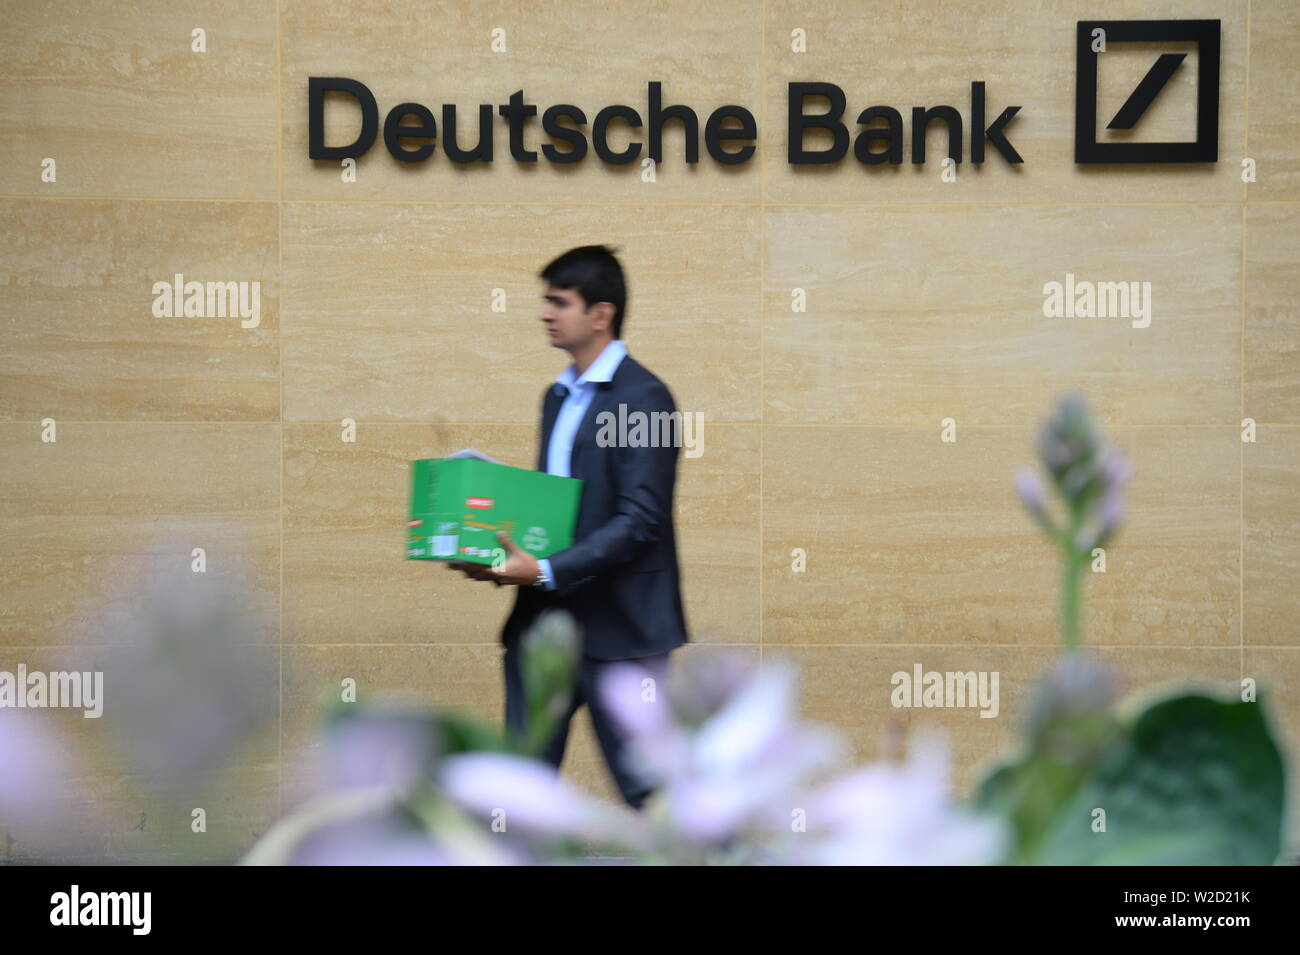 A man carries a box as he leaves a London office of Deutsche Bank which has confirmed plans to cut 18,000 positions across its global business, causing thousands of workers in the City of London to fear for their jobs. - Stock Image